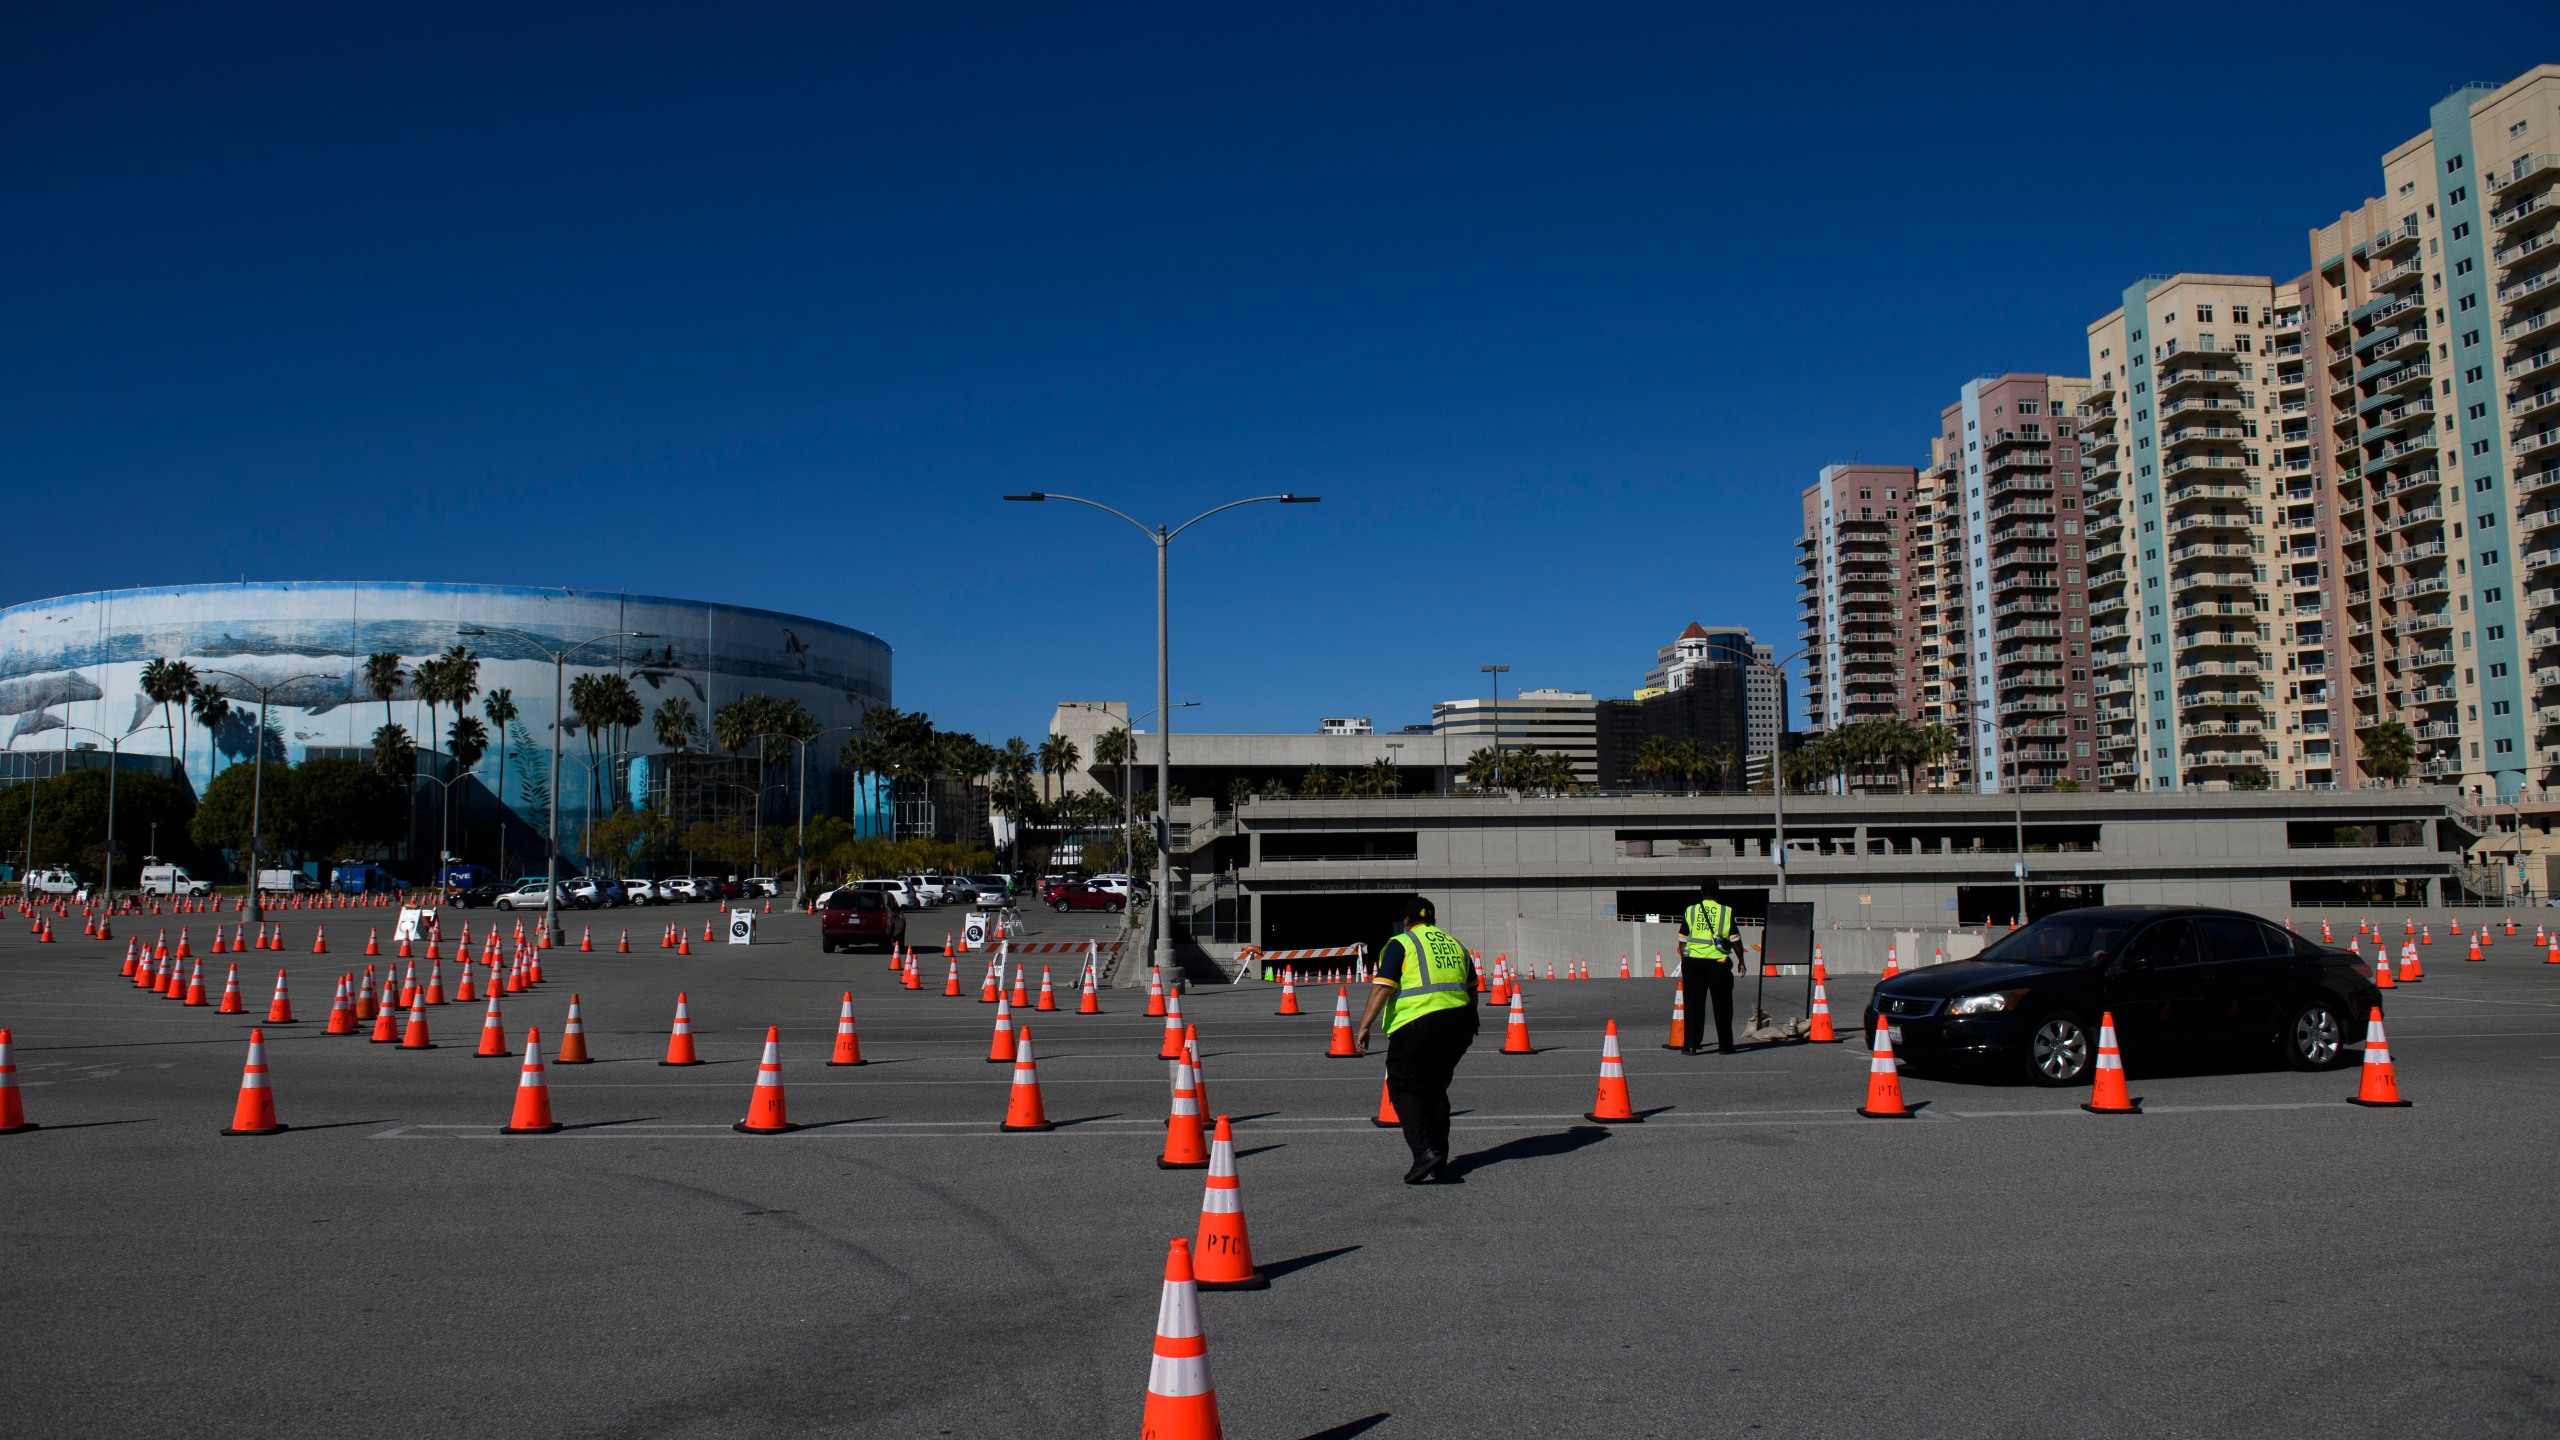 Vehicles drive to a post-vaccine recovery area after at a COVID-19 vaccination site on Feb.22, 2021 in Long Beach. (PATRICK T. FALLON/AFP via Getty Images)